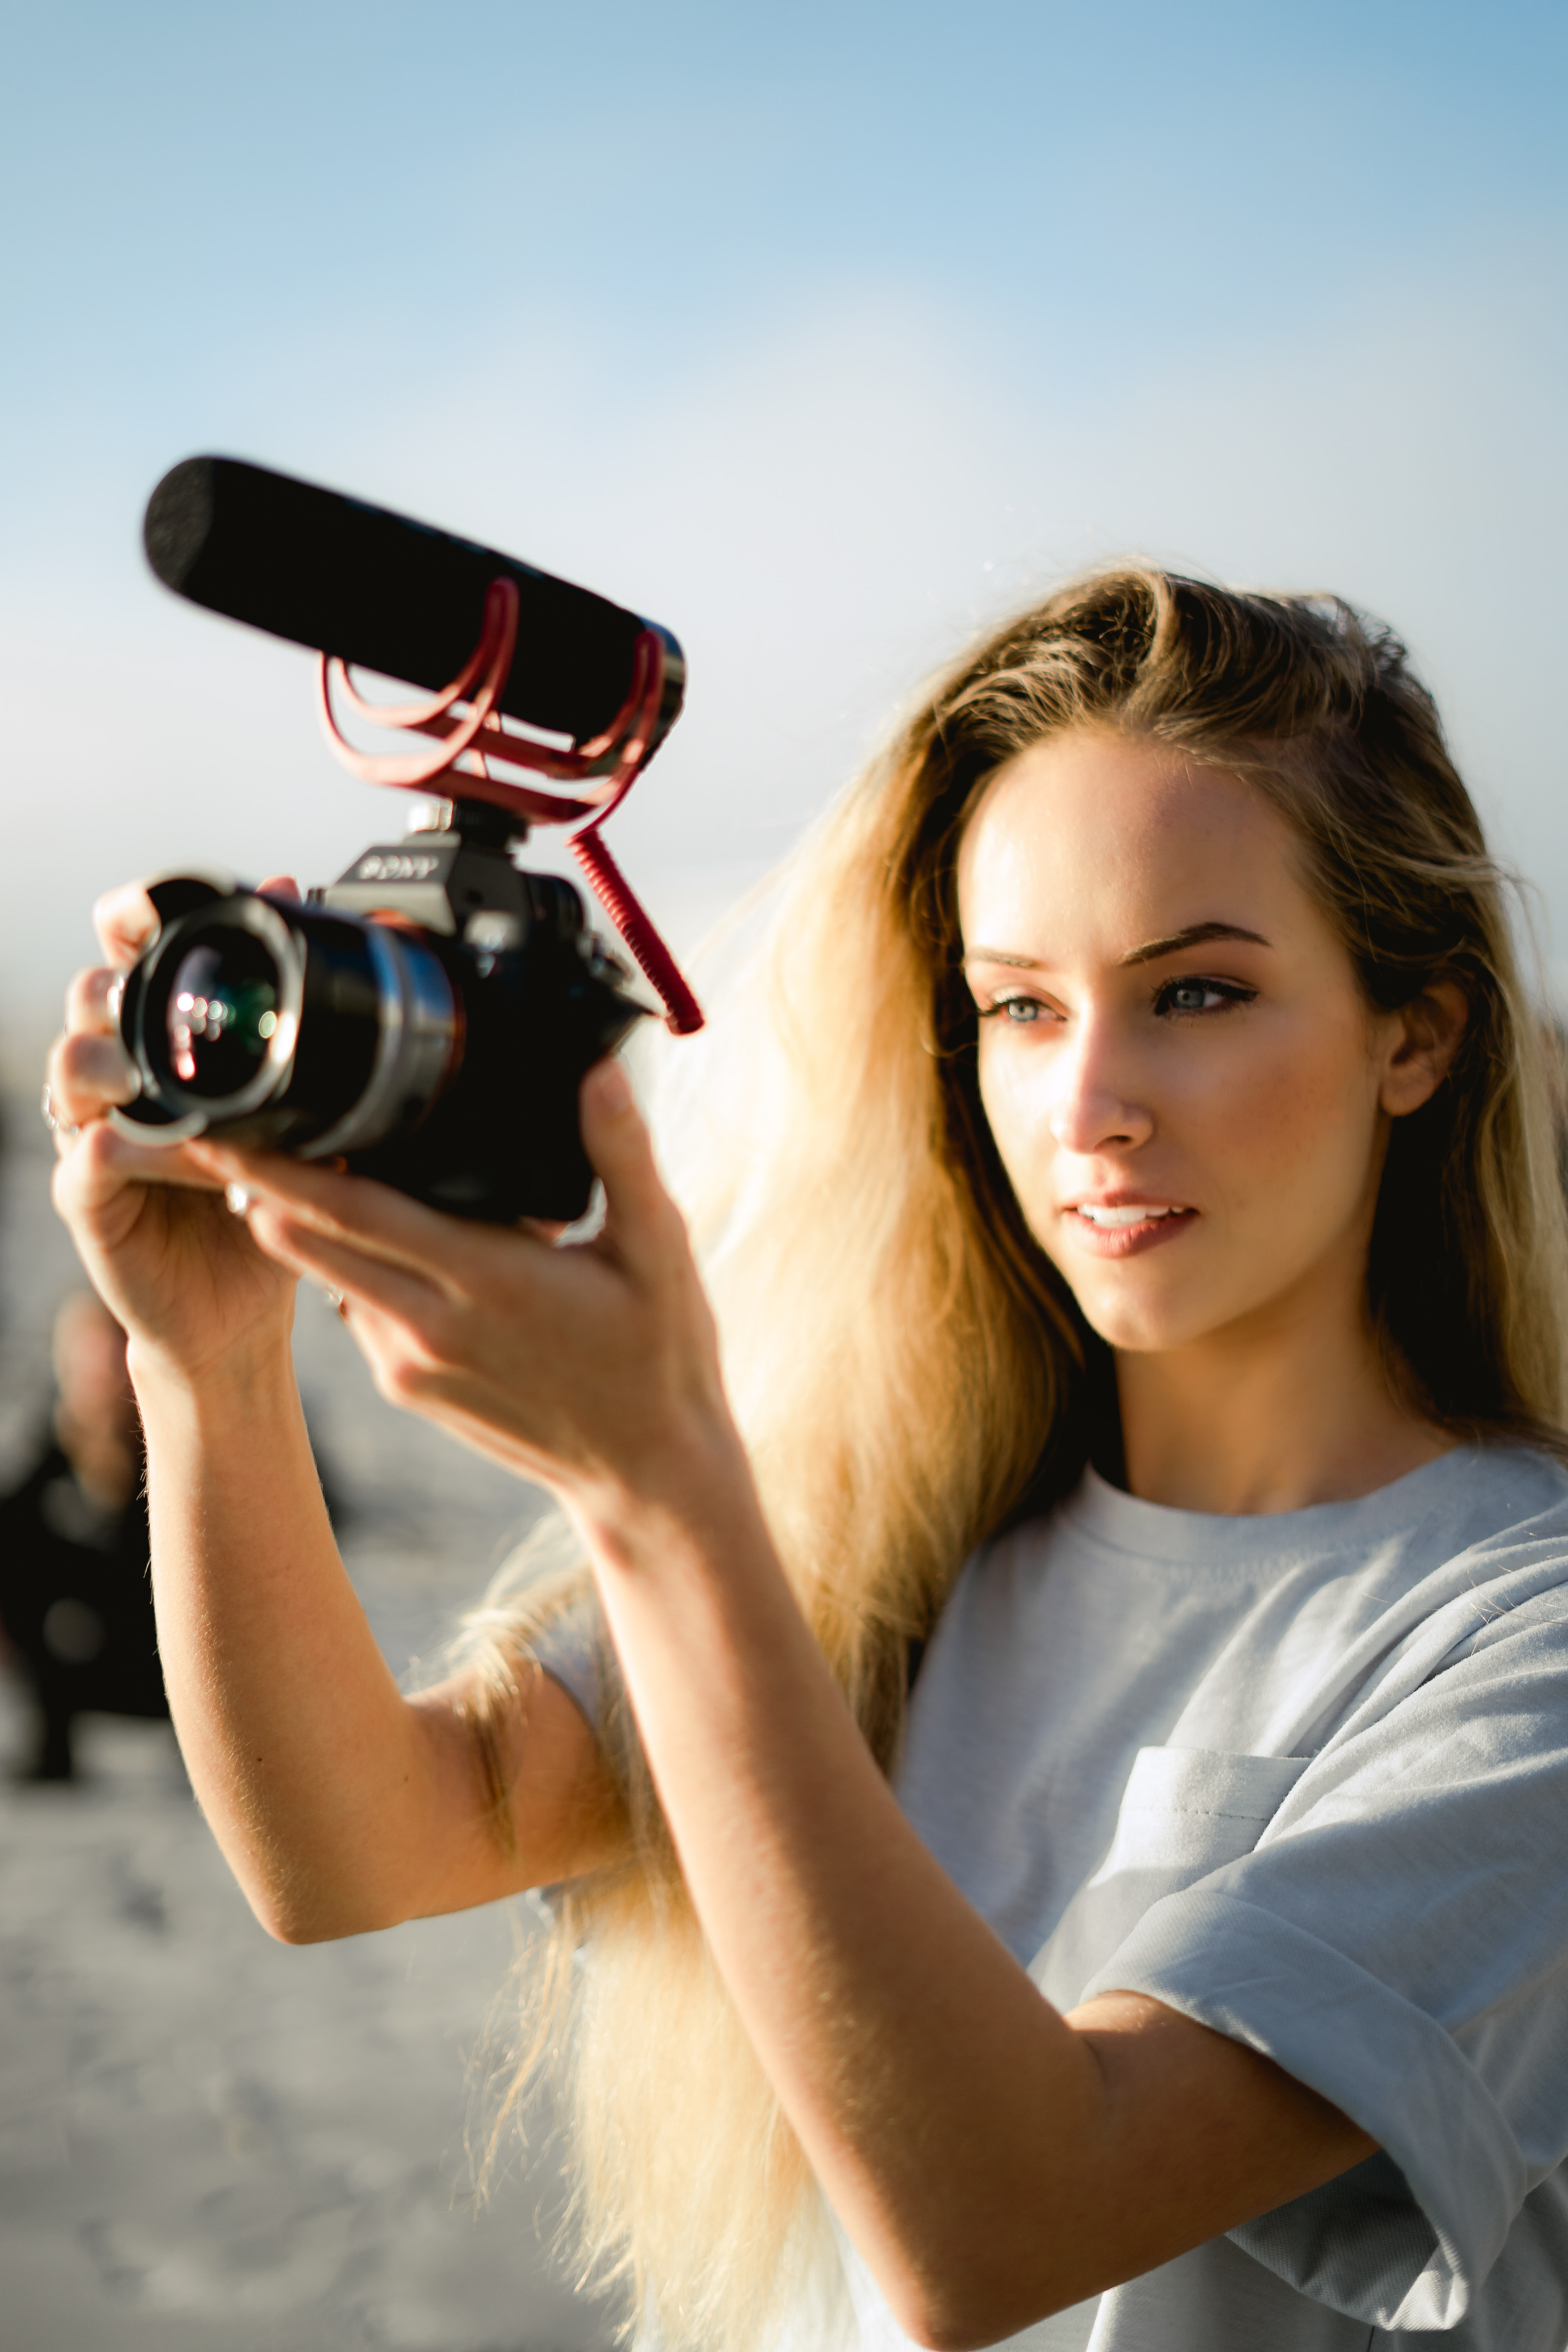 woman holding black DSLR camera with video mic while standing